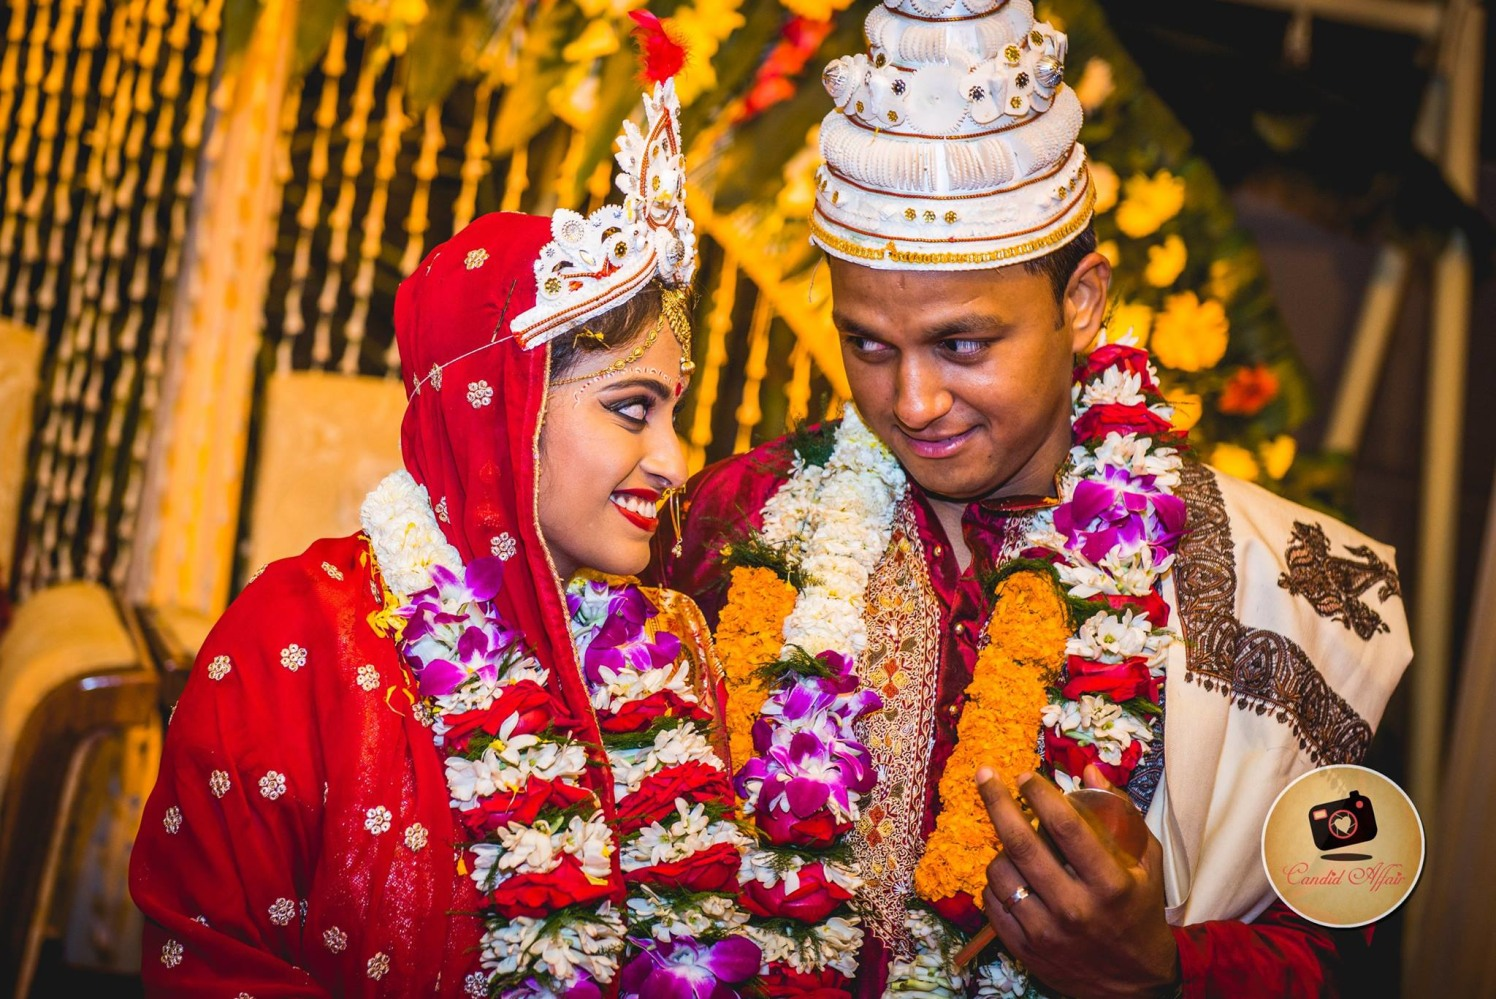 Candid Shot Of The Coupe On Their Special Day by Candid Affair Wedding-photography   Weddings Photos & Ideas